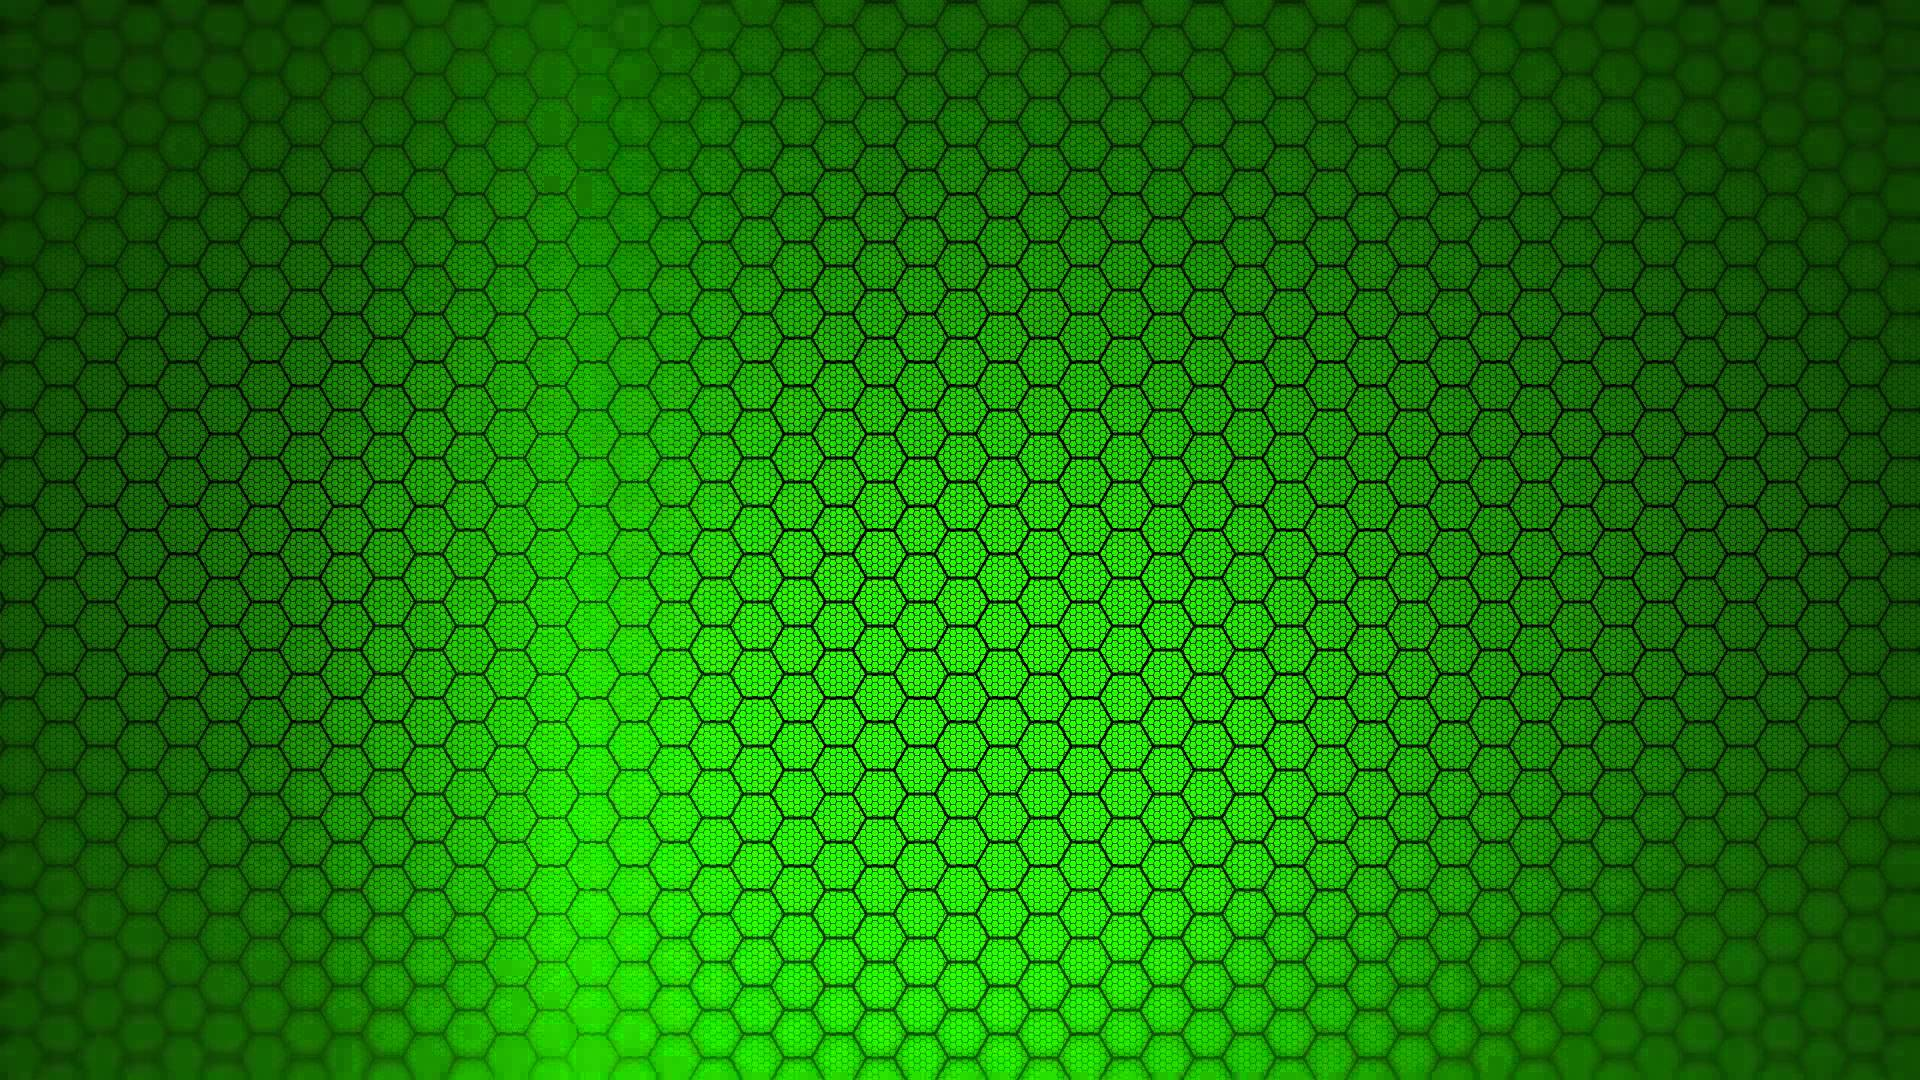 Green Backgrounds 17 19807 HD Wallpapers